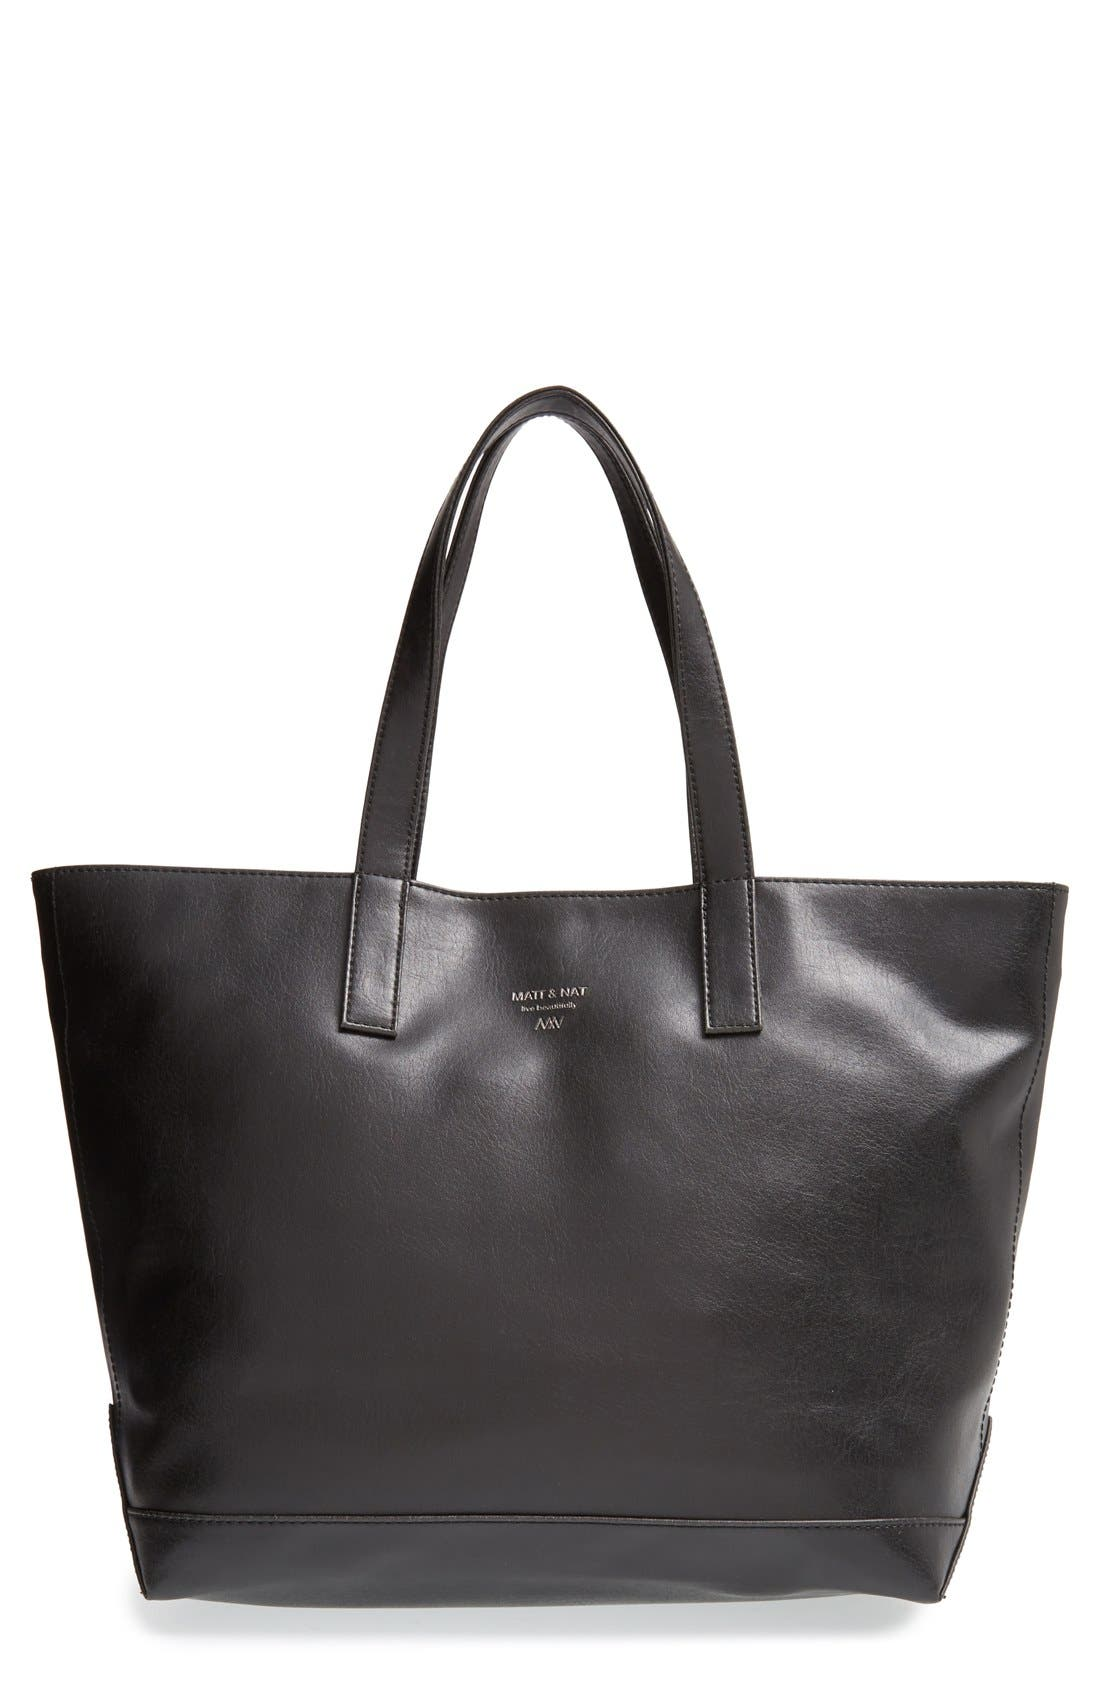 Alternate Image 1 Selected - Matt & Nat 'Schlepp' Vegan Leather Tote